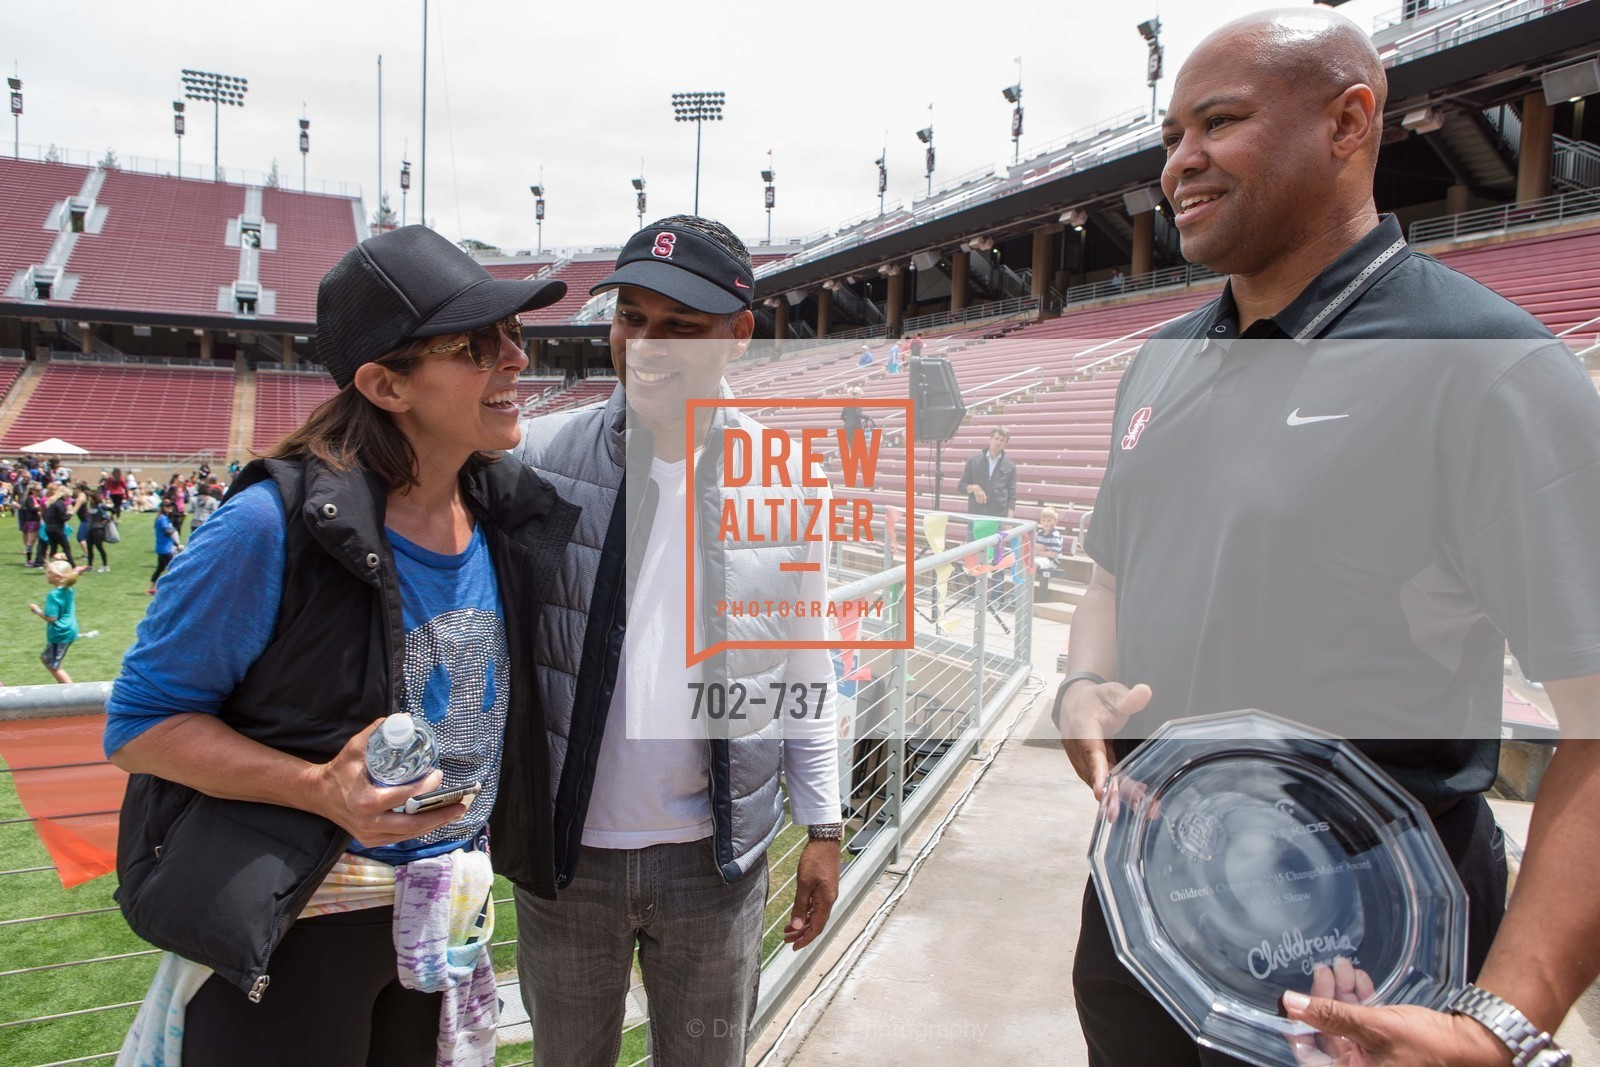 Raj Mathai, David Shaw, Children's Champions, US, May 17th, 2015,Drew Altizer, Drew Altizer Photography, full-service agency, private events, San Francisco photographer, photographer california